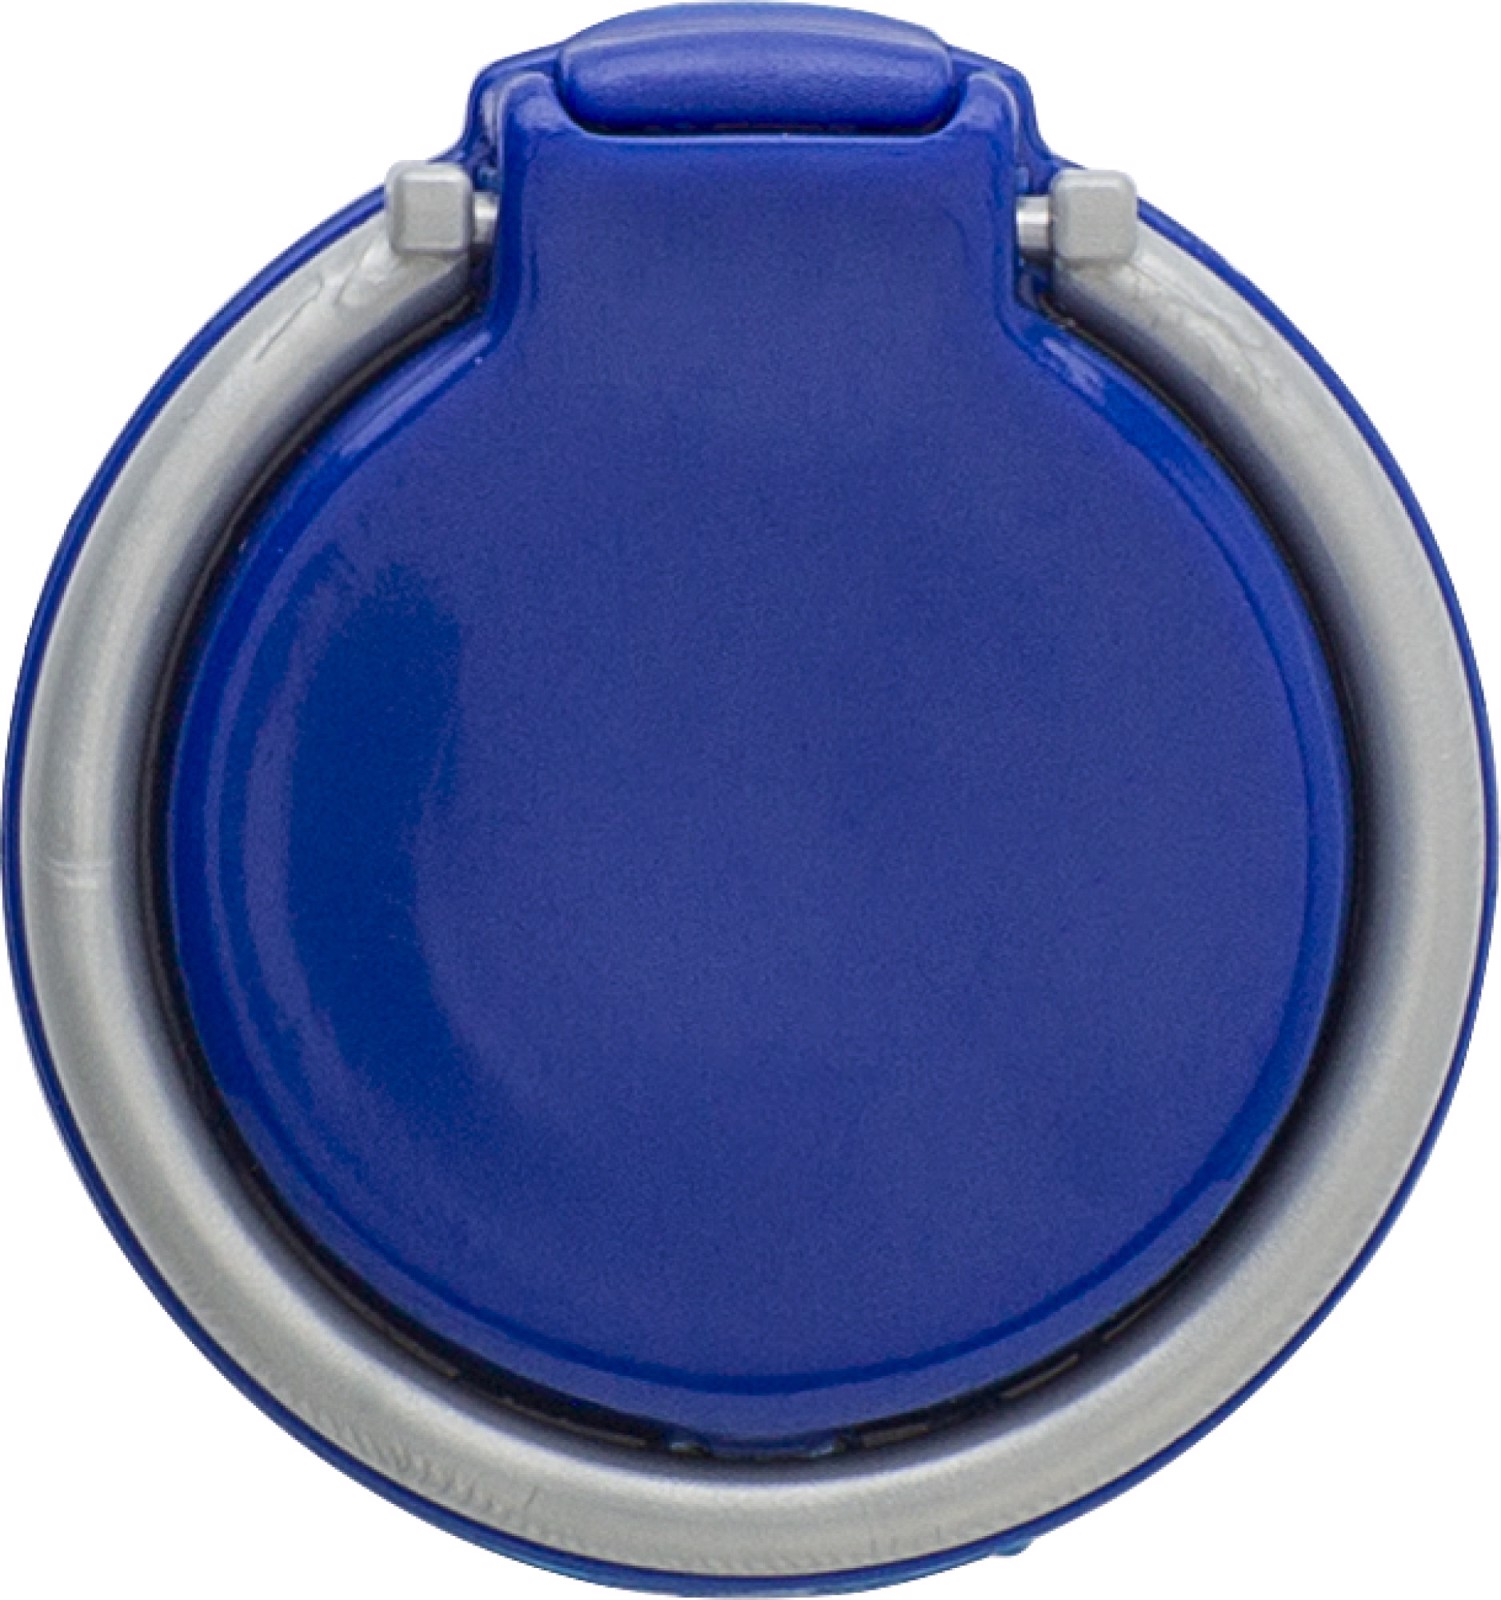 ABS mobile phone ring - Cobalt Blue